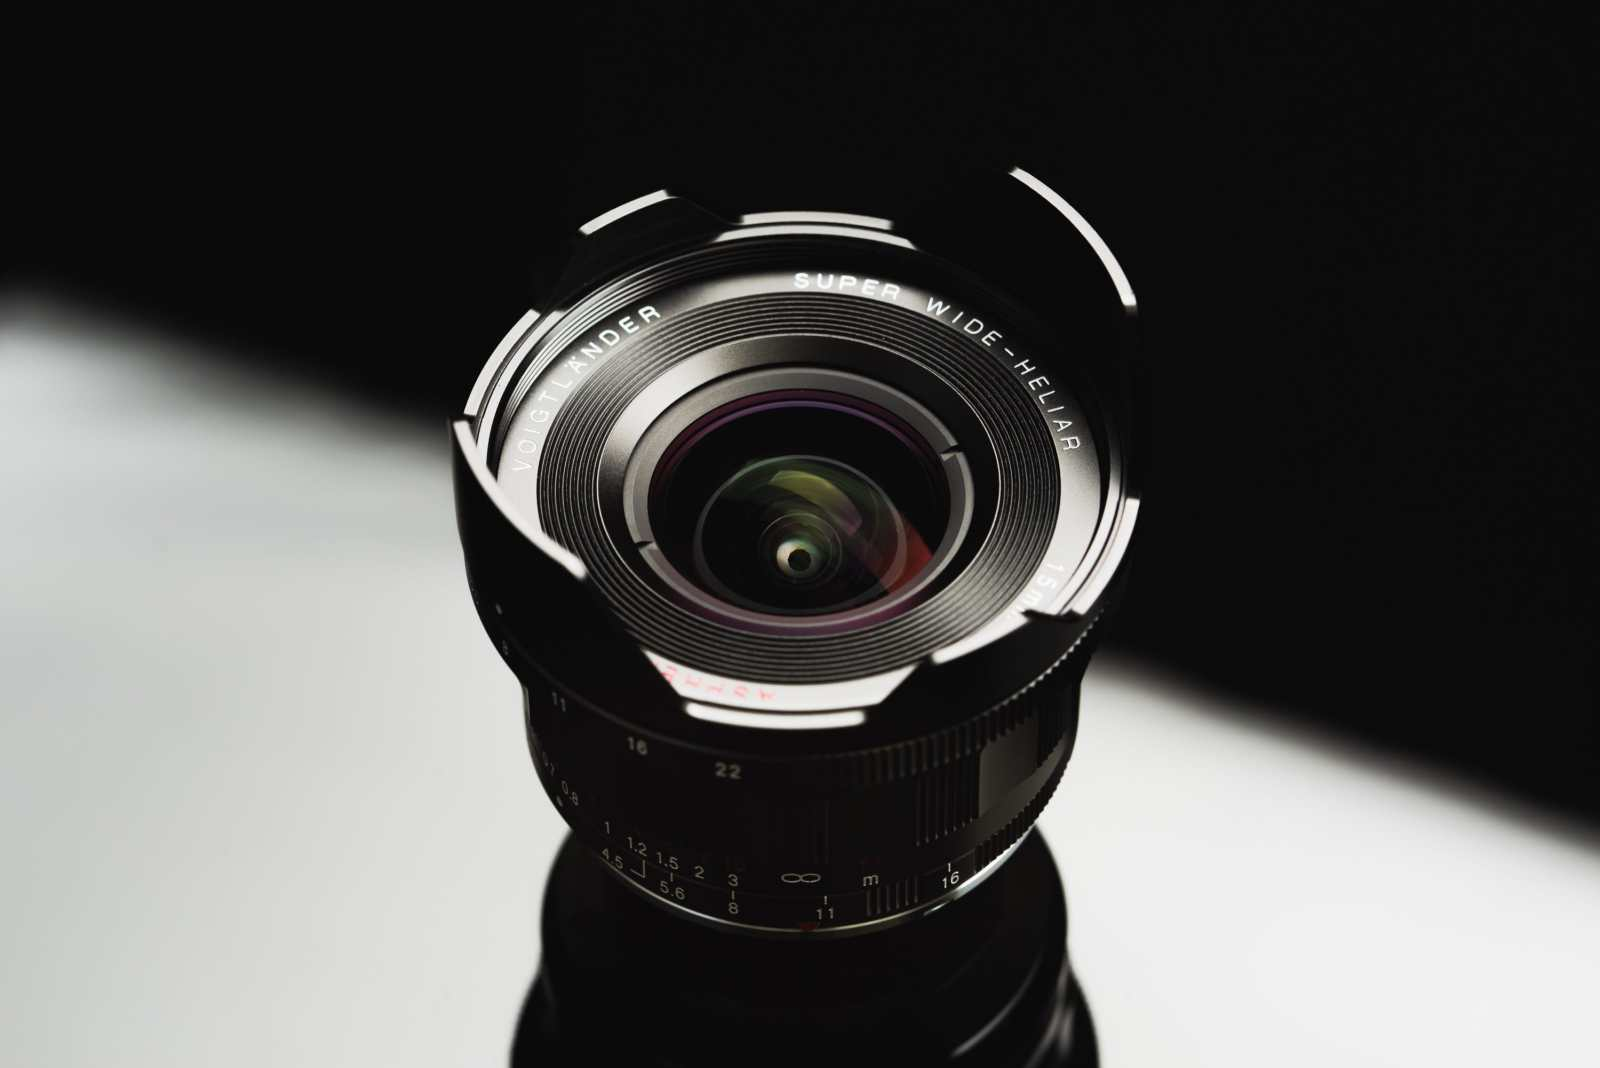 A list of all lenses available for Leica M-mount cameras.